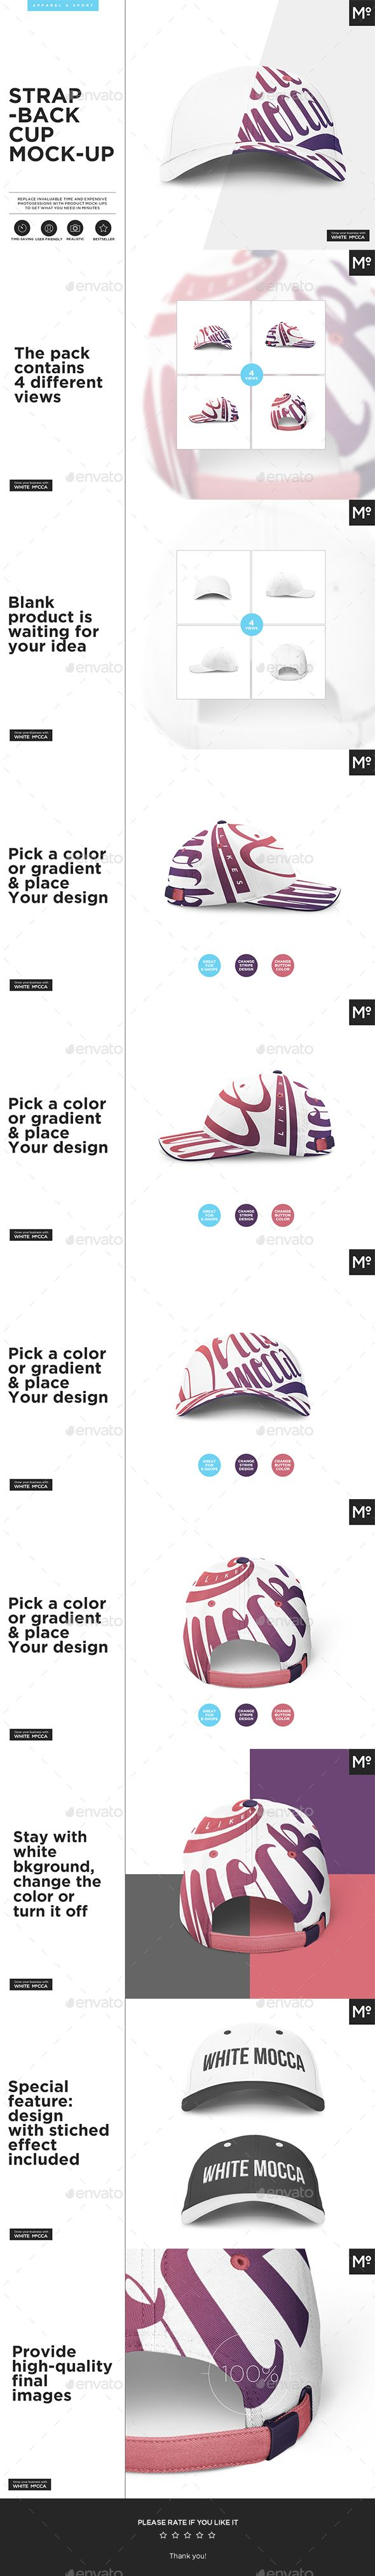 The Strapback Cap Mock-up - Miscellaneous Product Mock-Ups